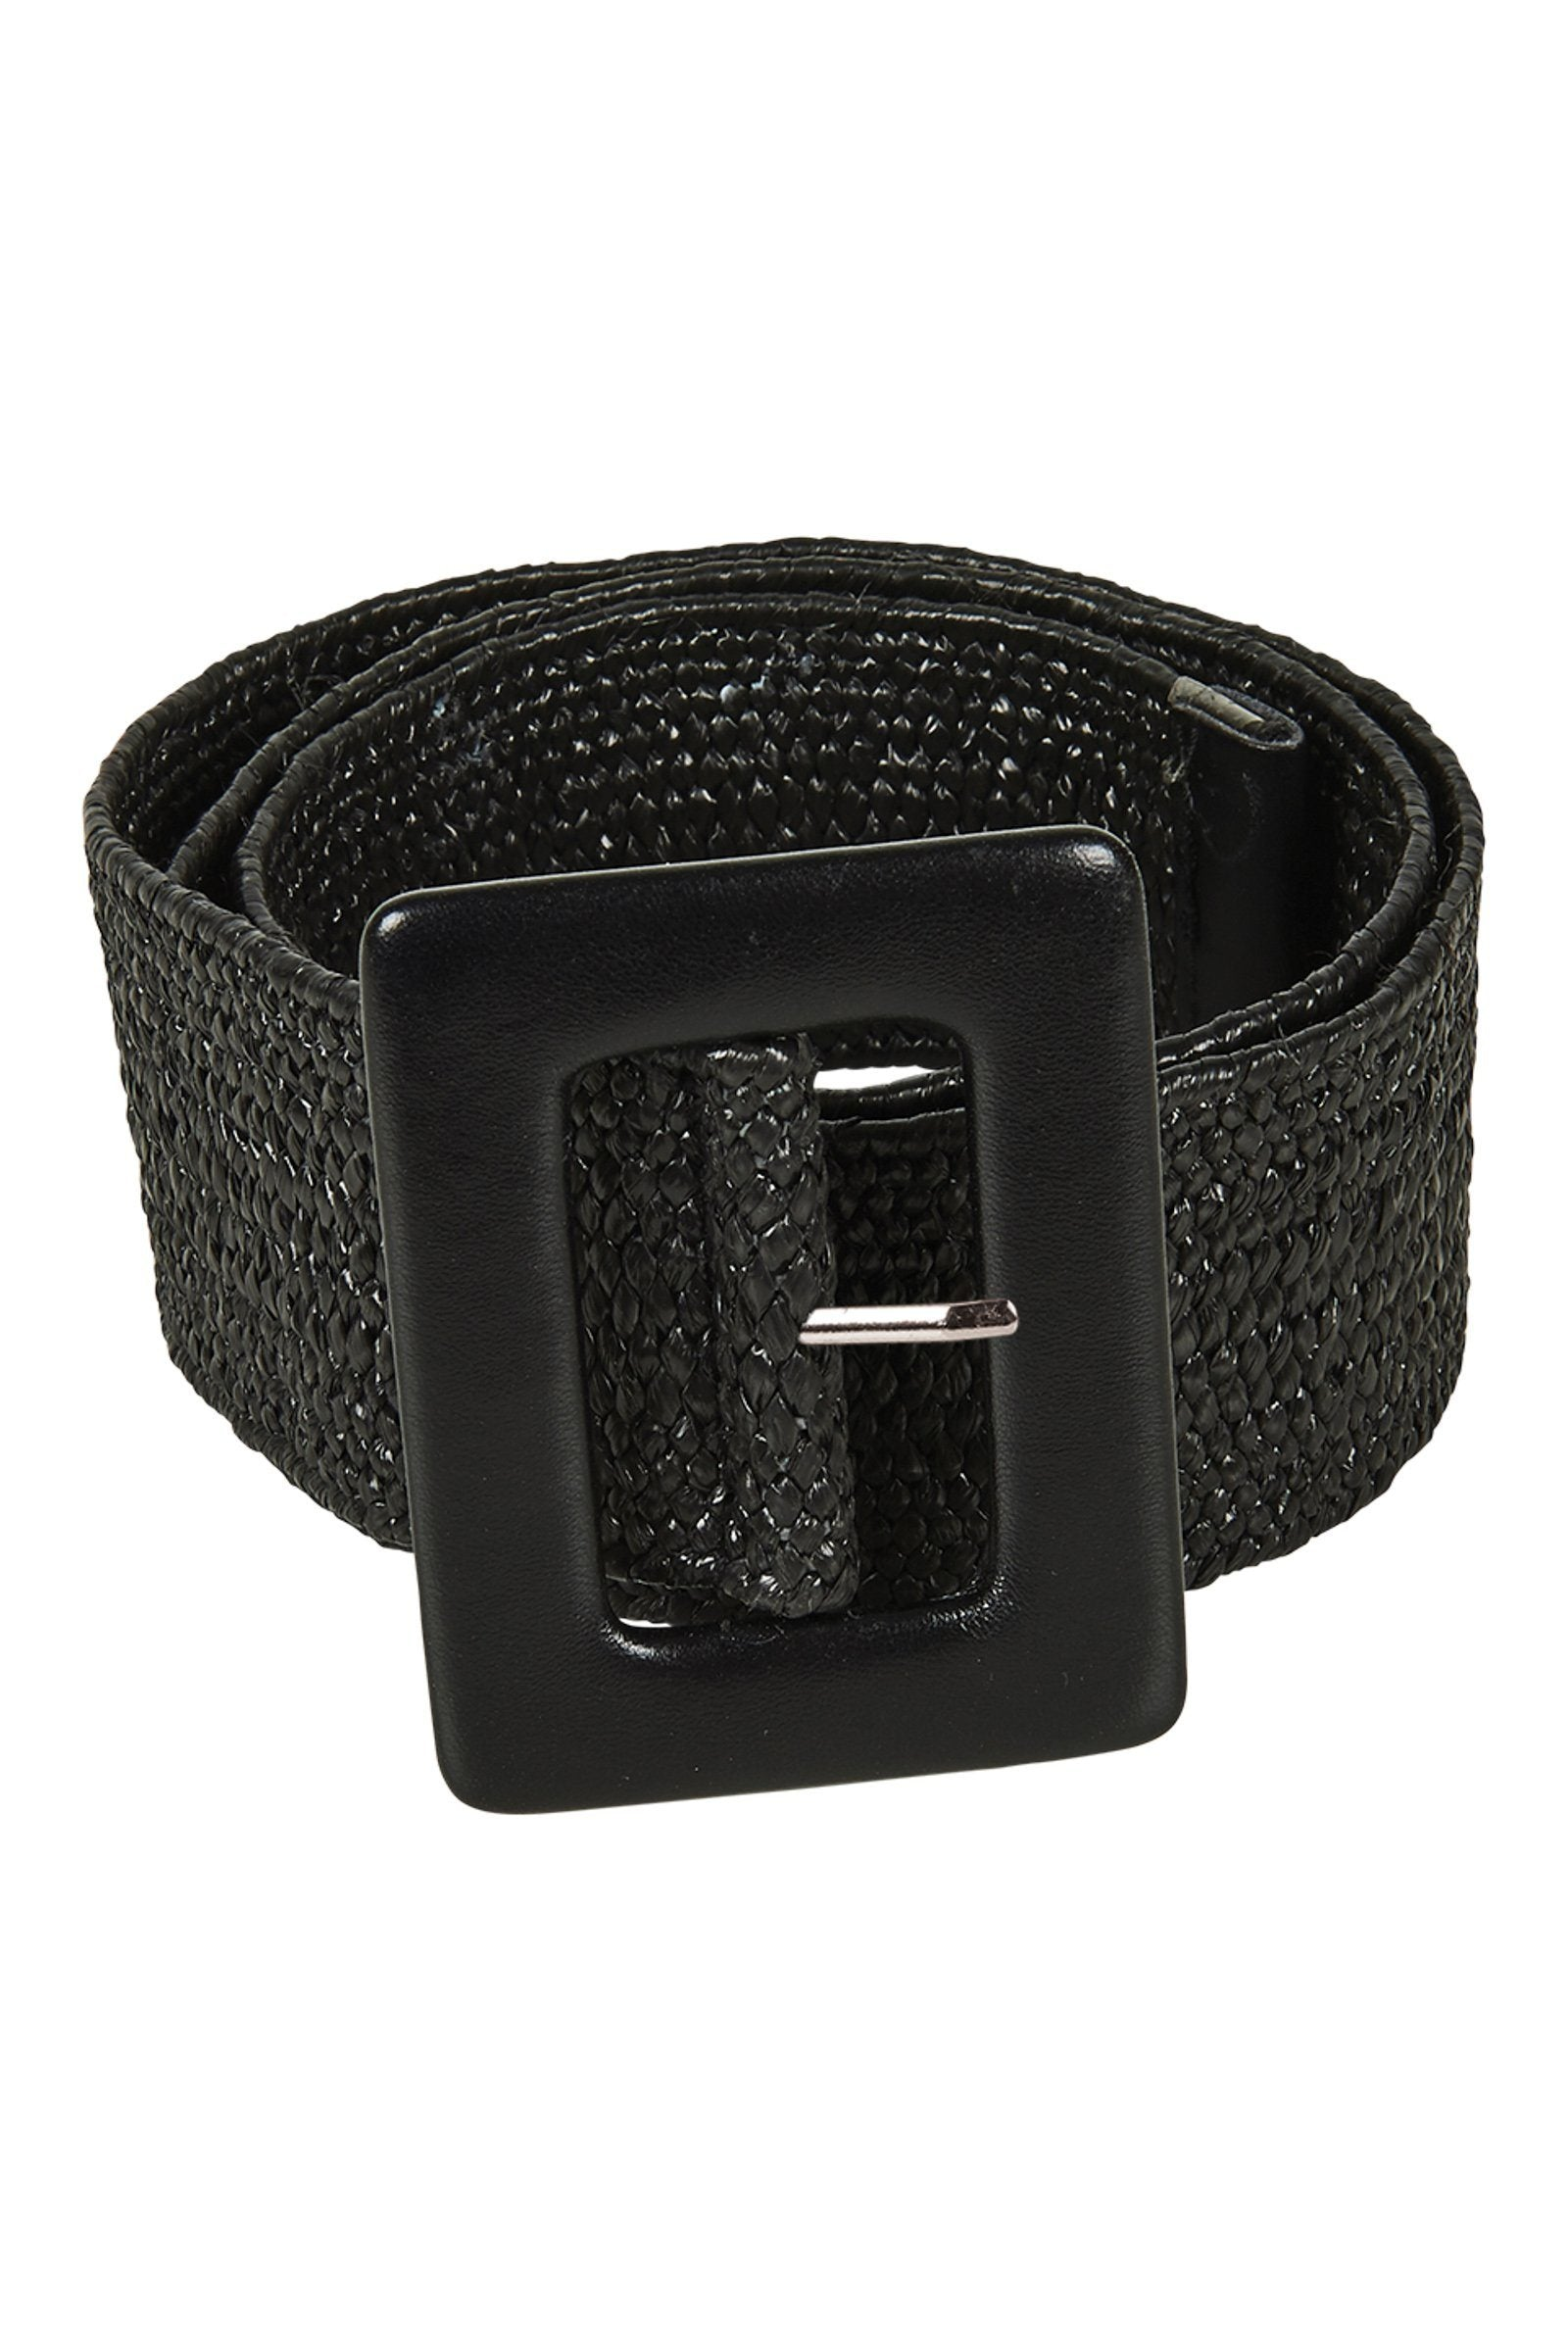 eb&ive - Tribu Belt - Black Womens eb&ive